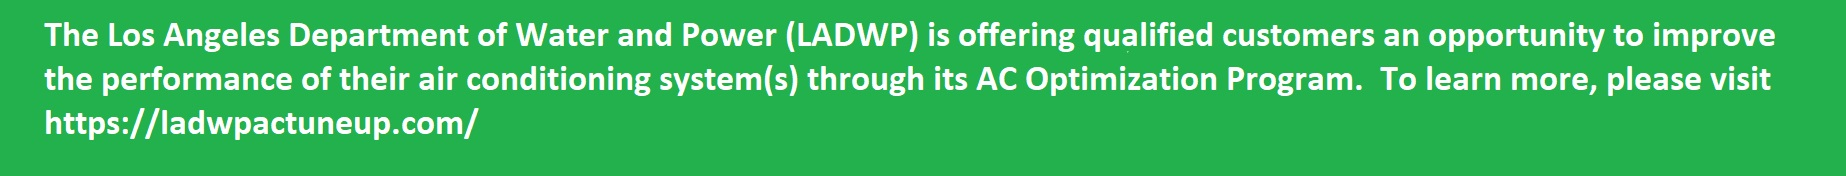 LADWP - AC Opitimization Program v2